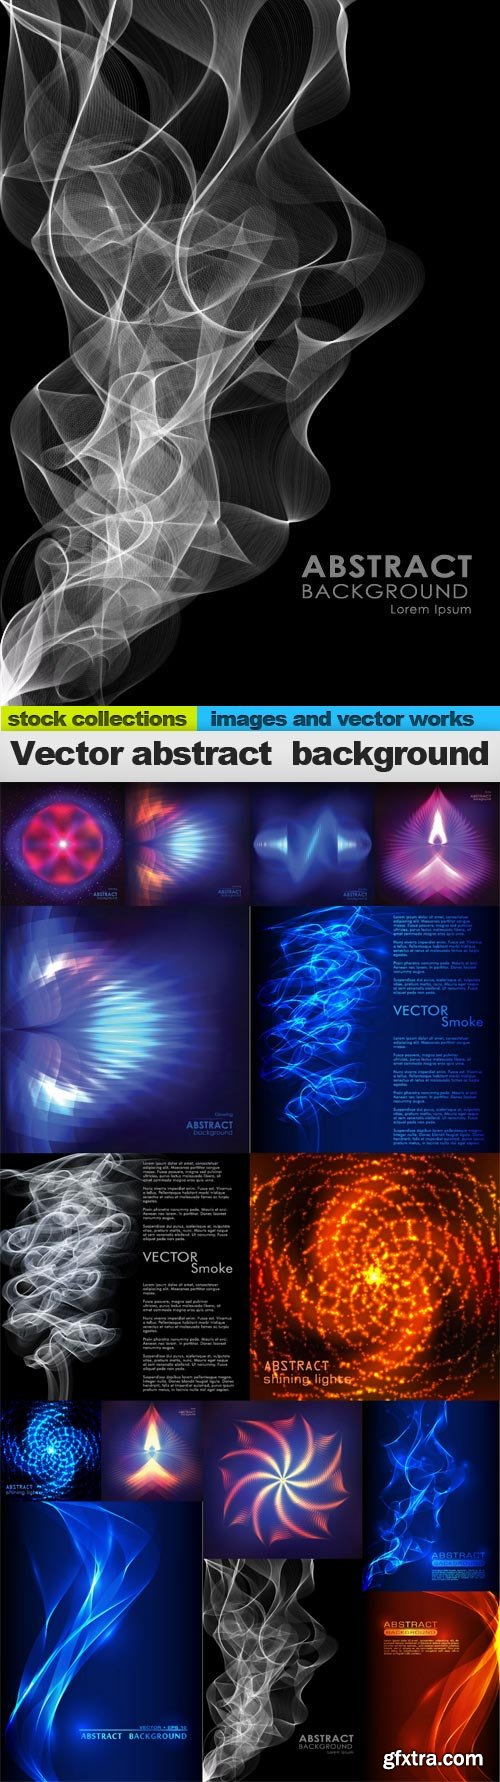 Vector abstract background, 15 x EPS